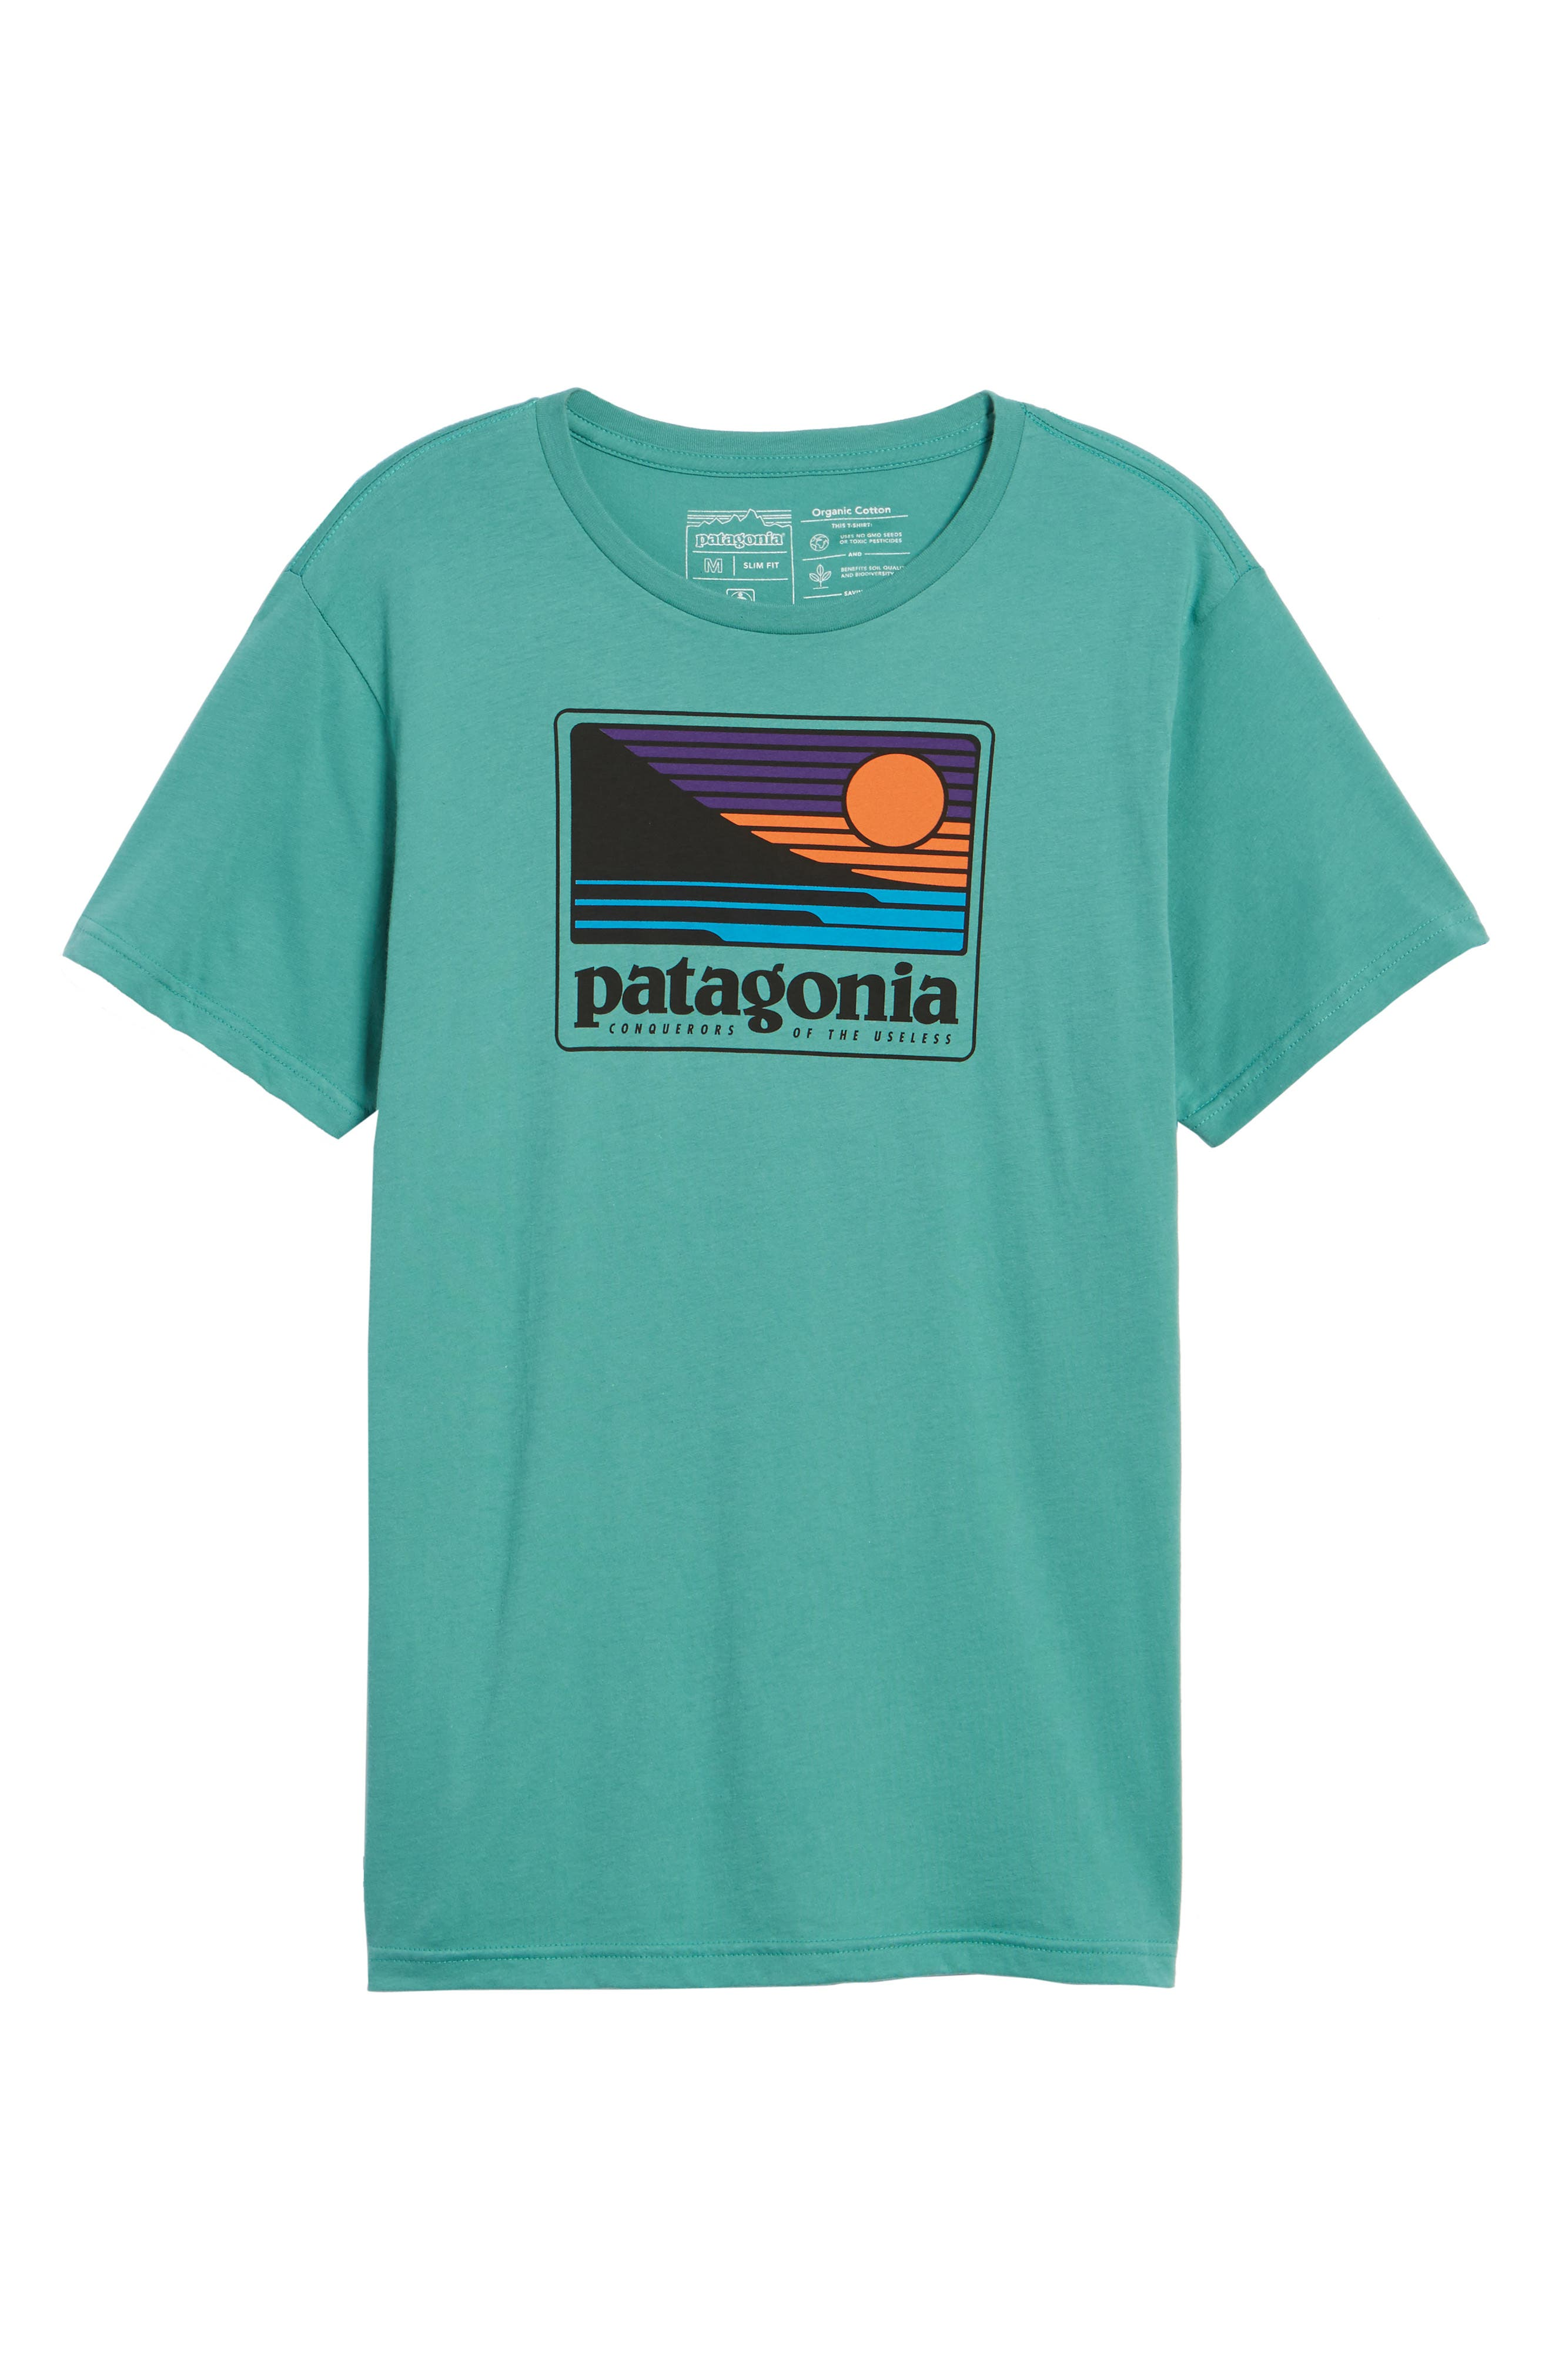 Up & Out Graphic Organic Cotton T-Shirt,                             Alternate thumbnail 6, color,                             Beryl Green